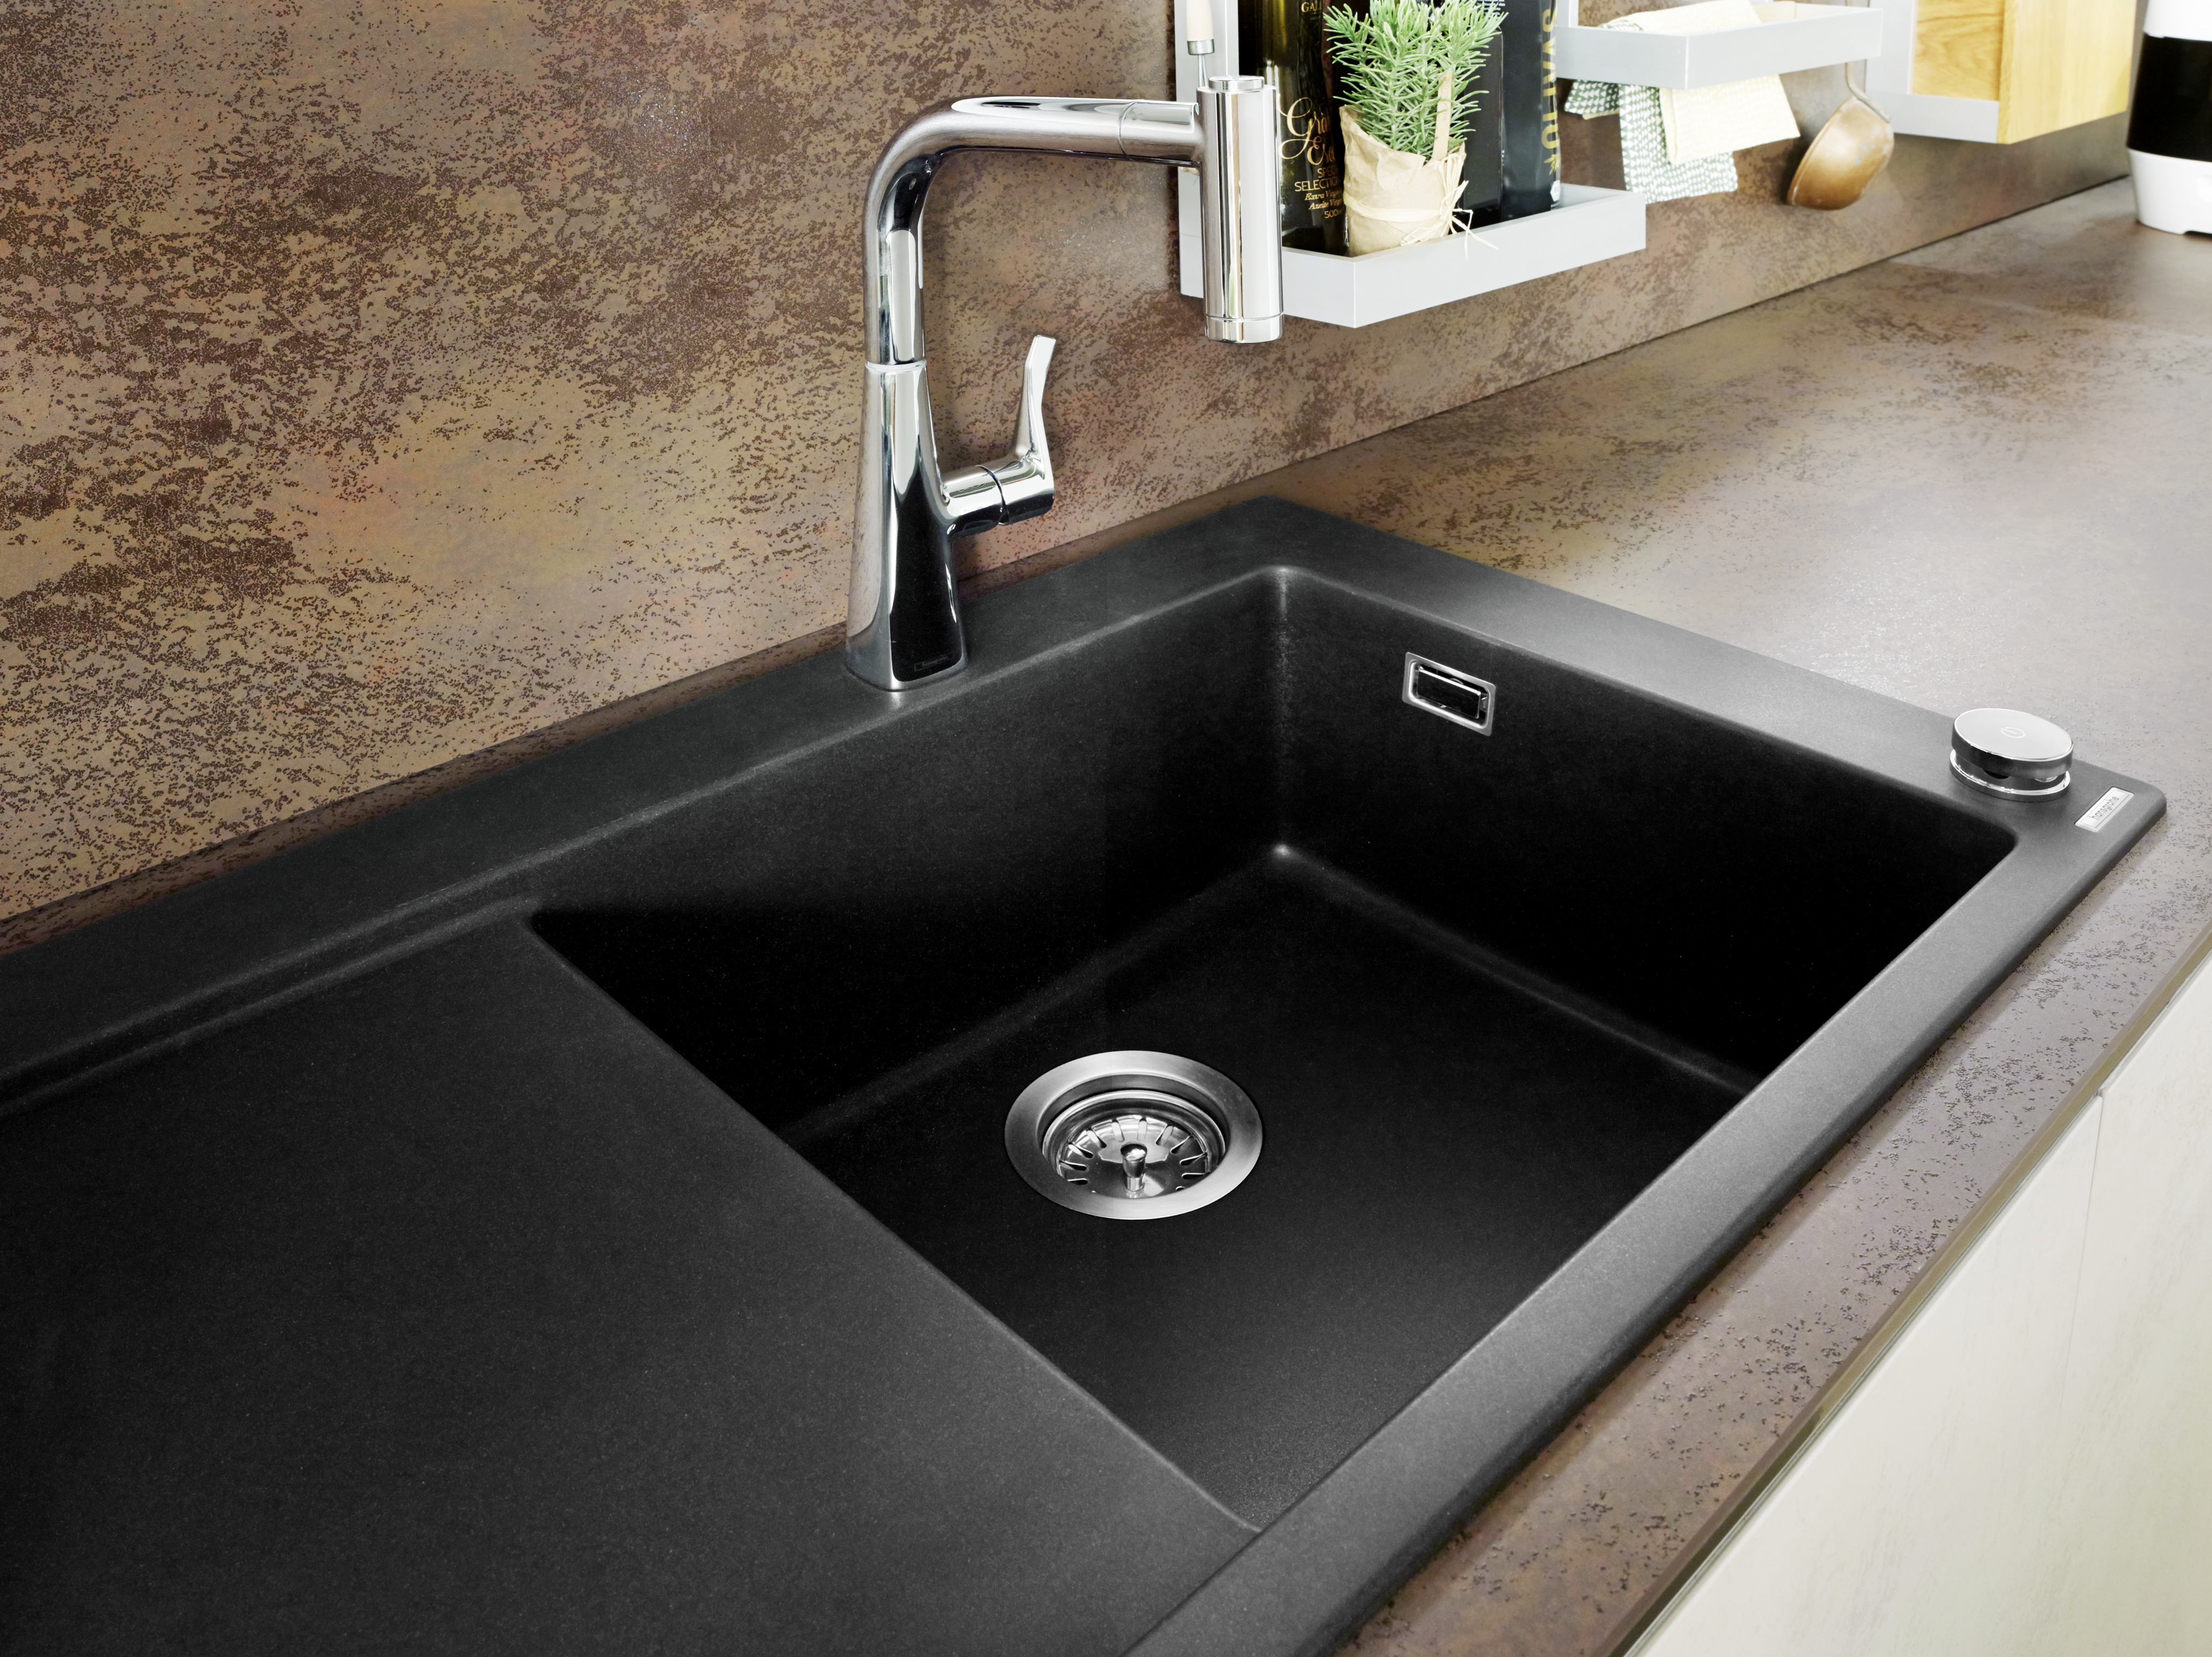 s51 s514 f450 built in sink 450 with